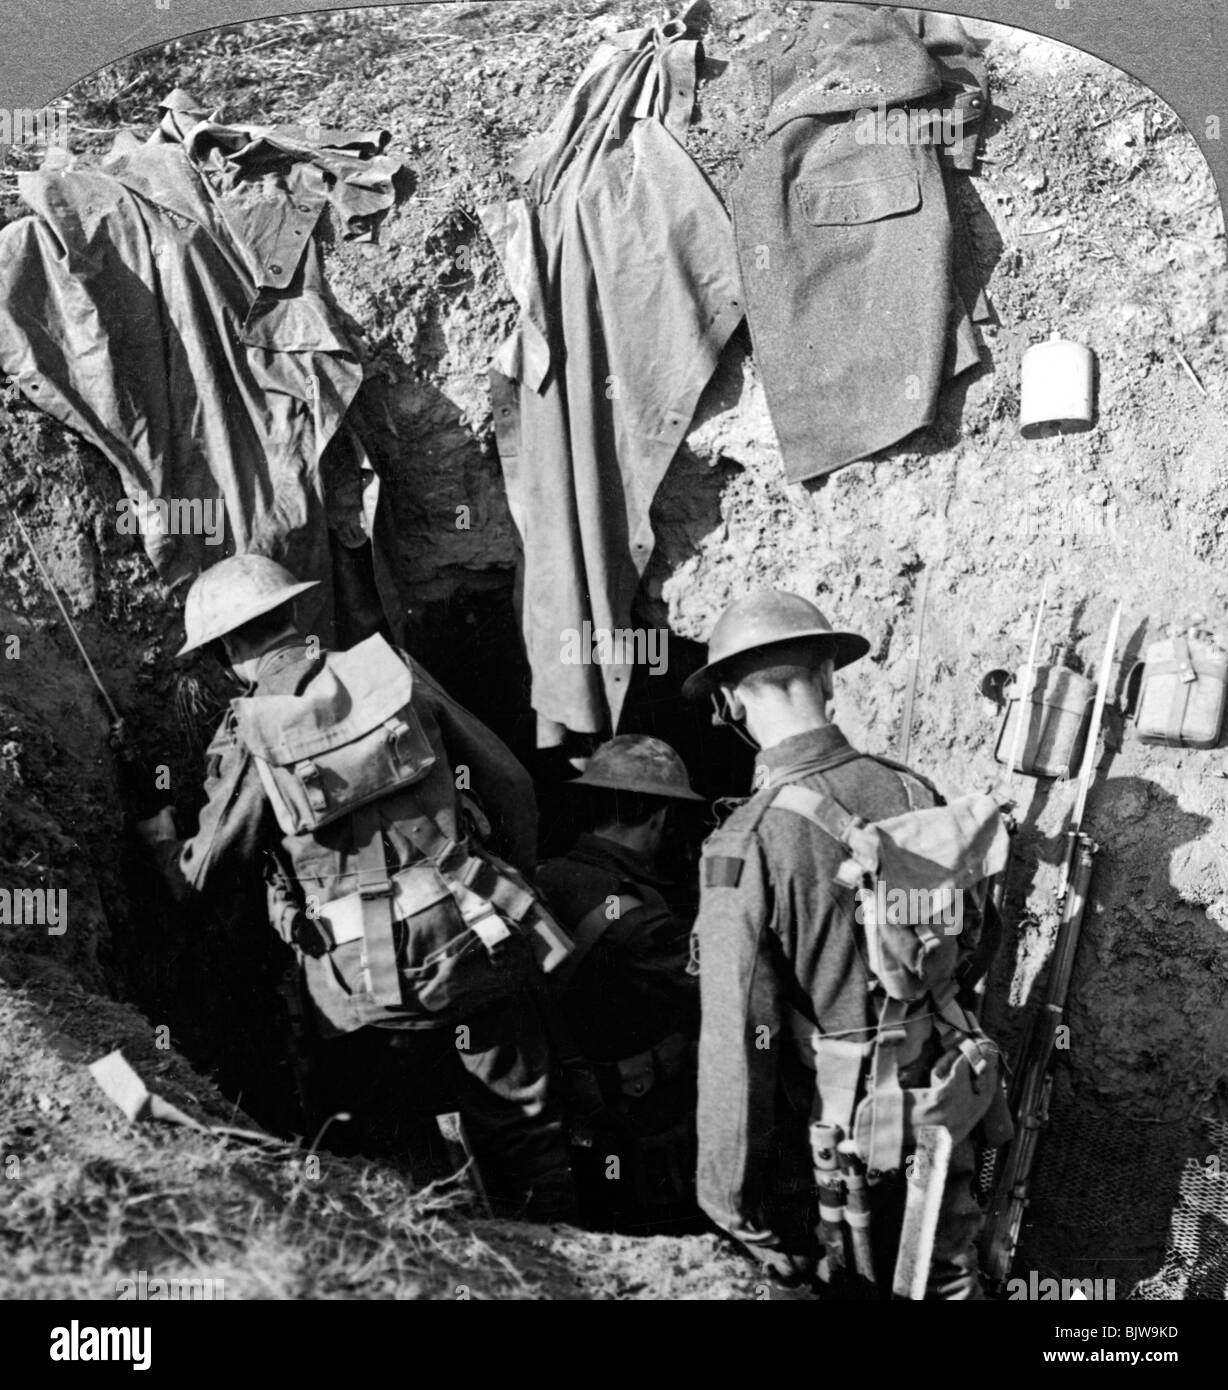 German dugout captured in the advance at Bapaume, France, World War I, 1914-1918. - Stock Image